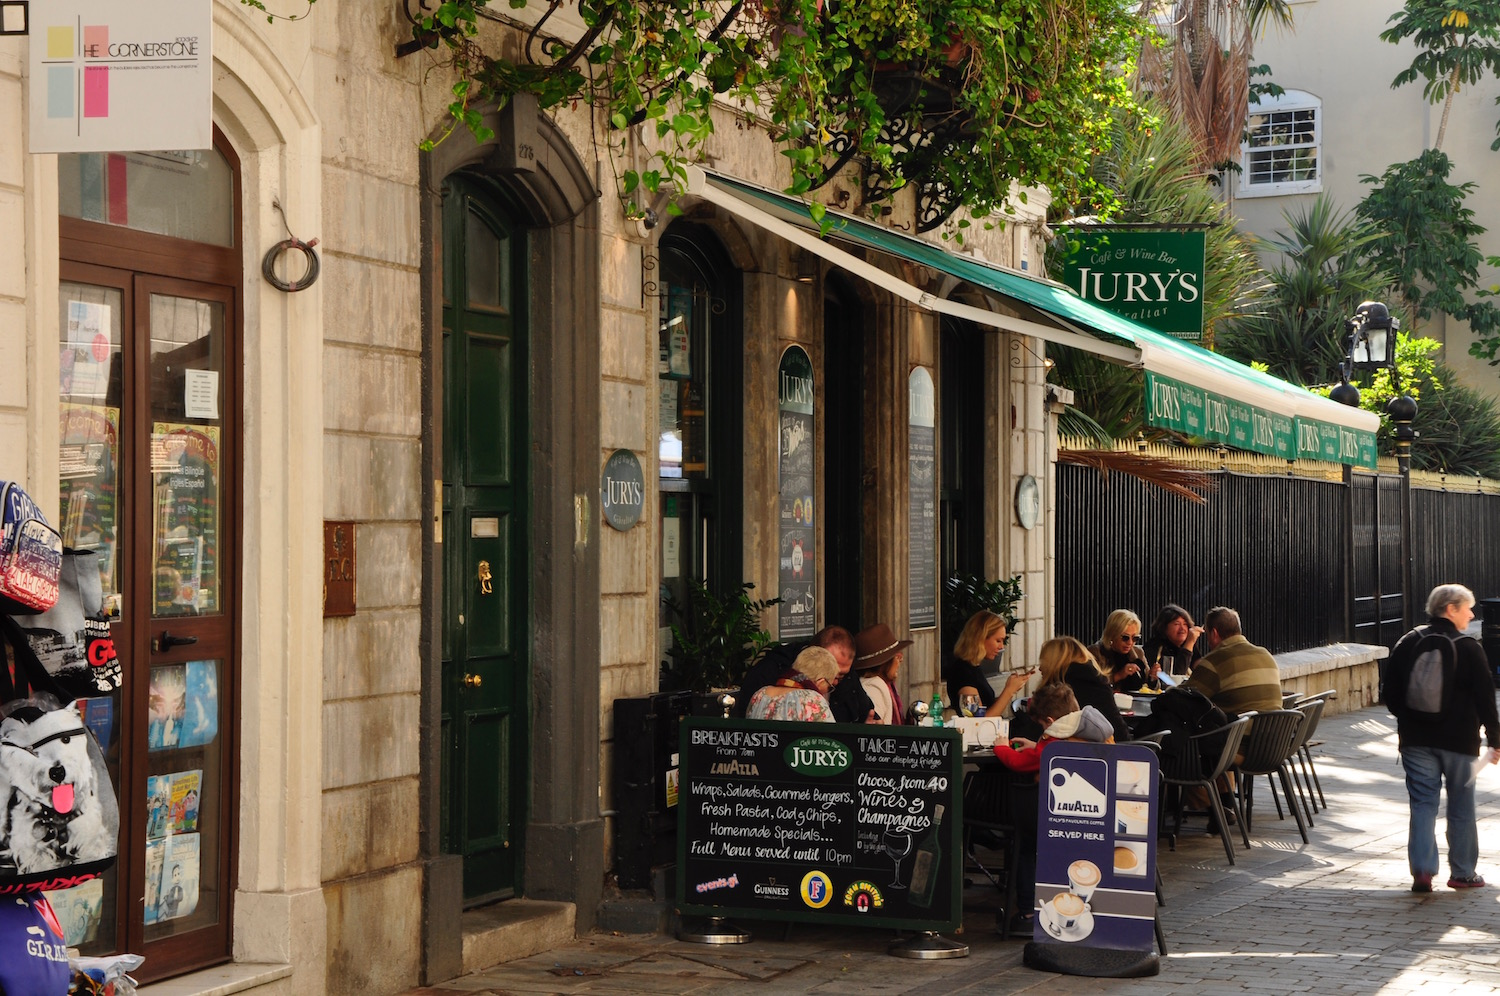 Jury's Cafe - Next to the Law Courts and a great 'witness box' for people-watching. This chic cafe does a roaring trade in legal lunches and eggs Benedict breakfasts. It's open from the crack 07.00 on weekdays, 09.00 at weekends.